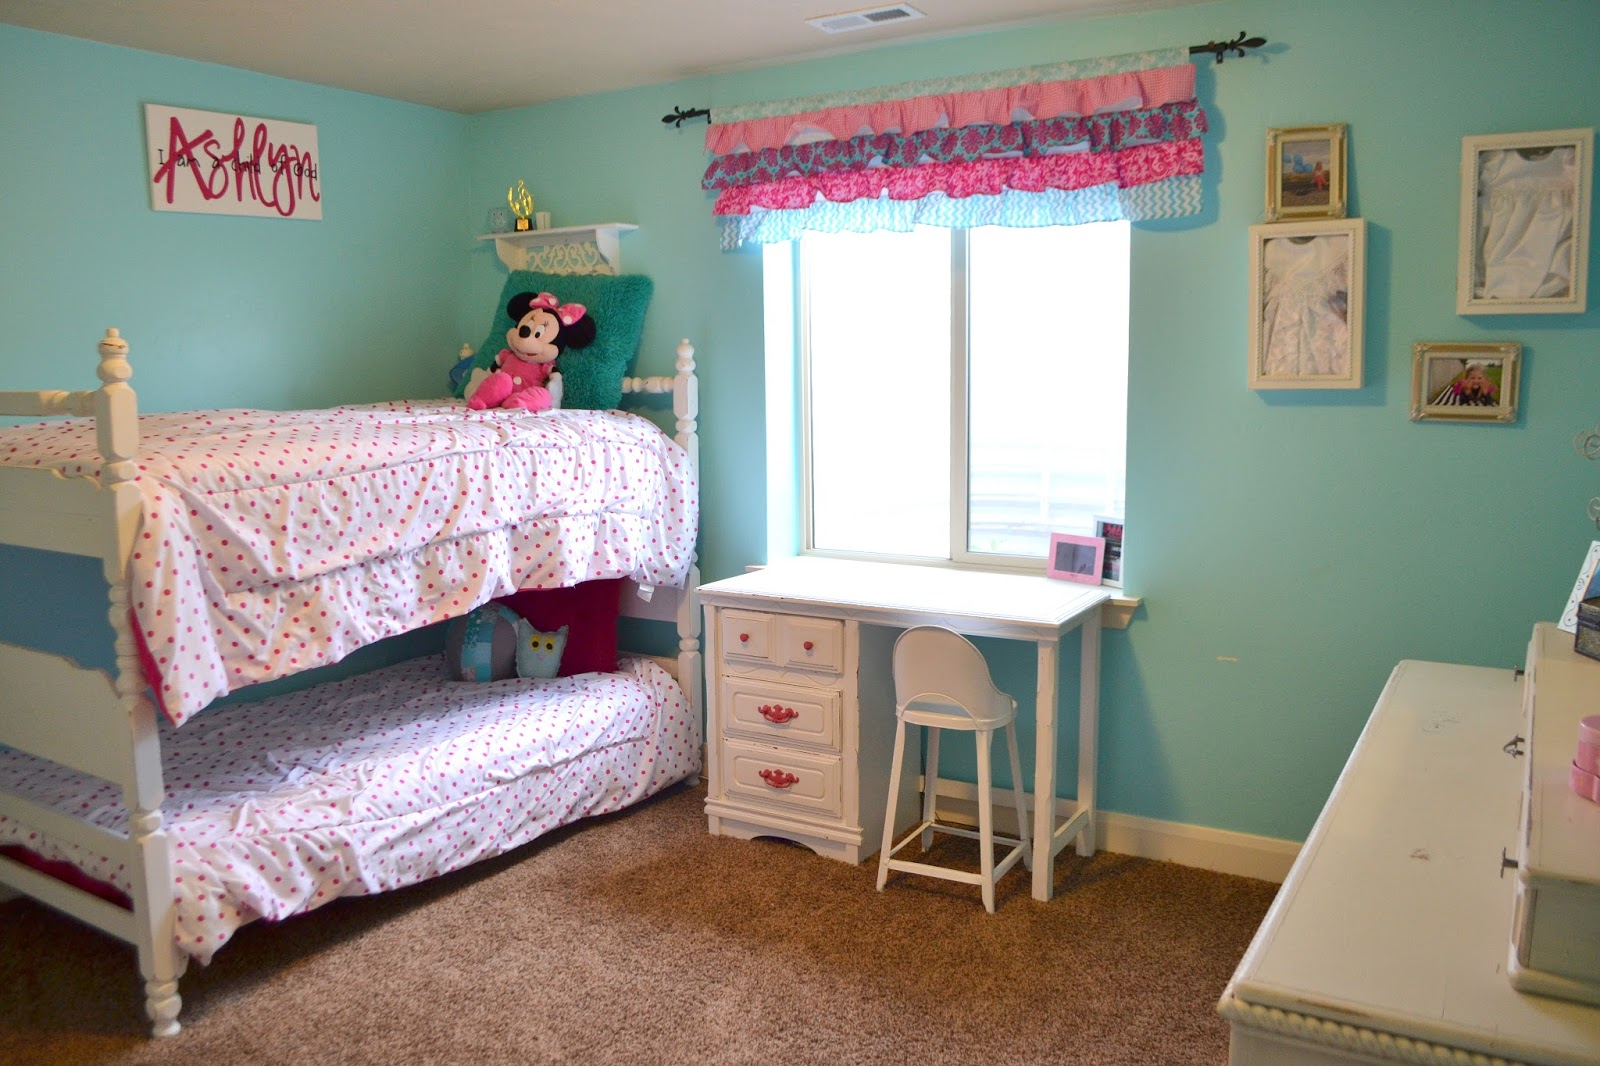 Hot Pink and Turquoise Girls Bedroom | A Vision to ...